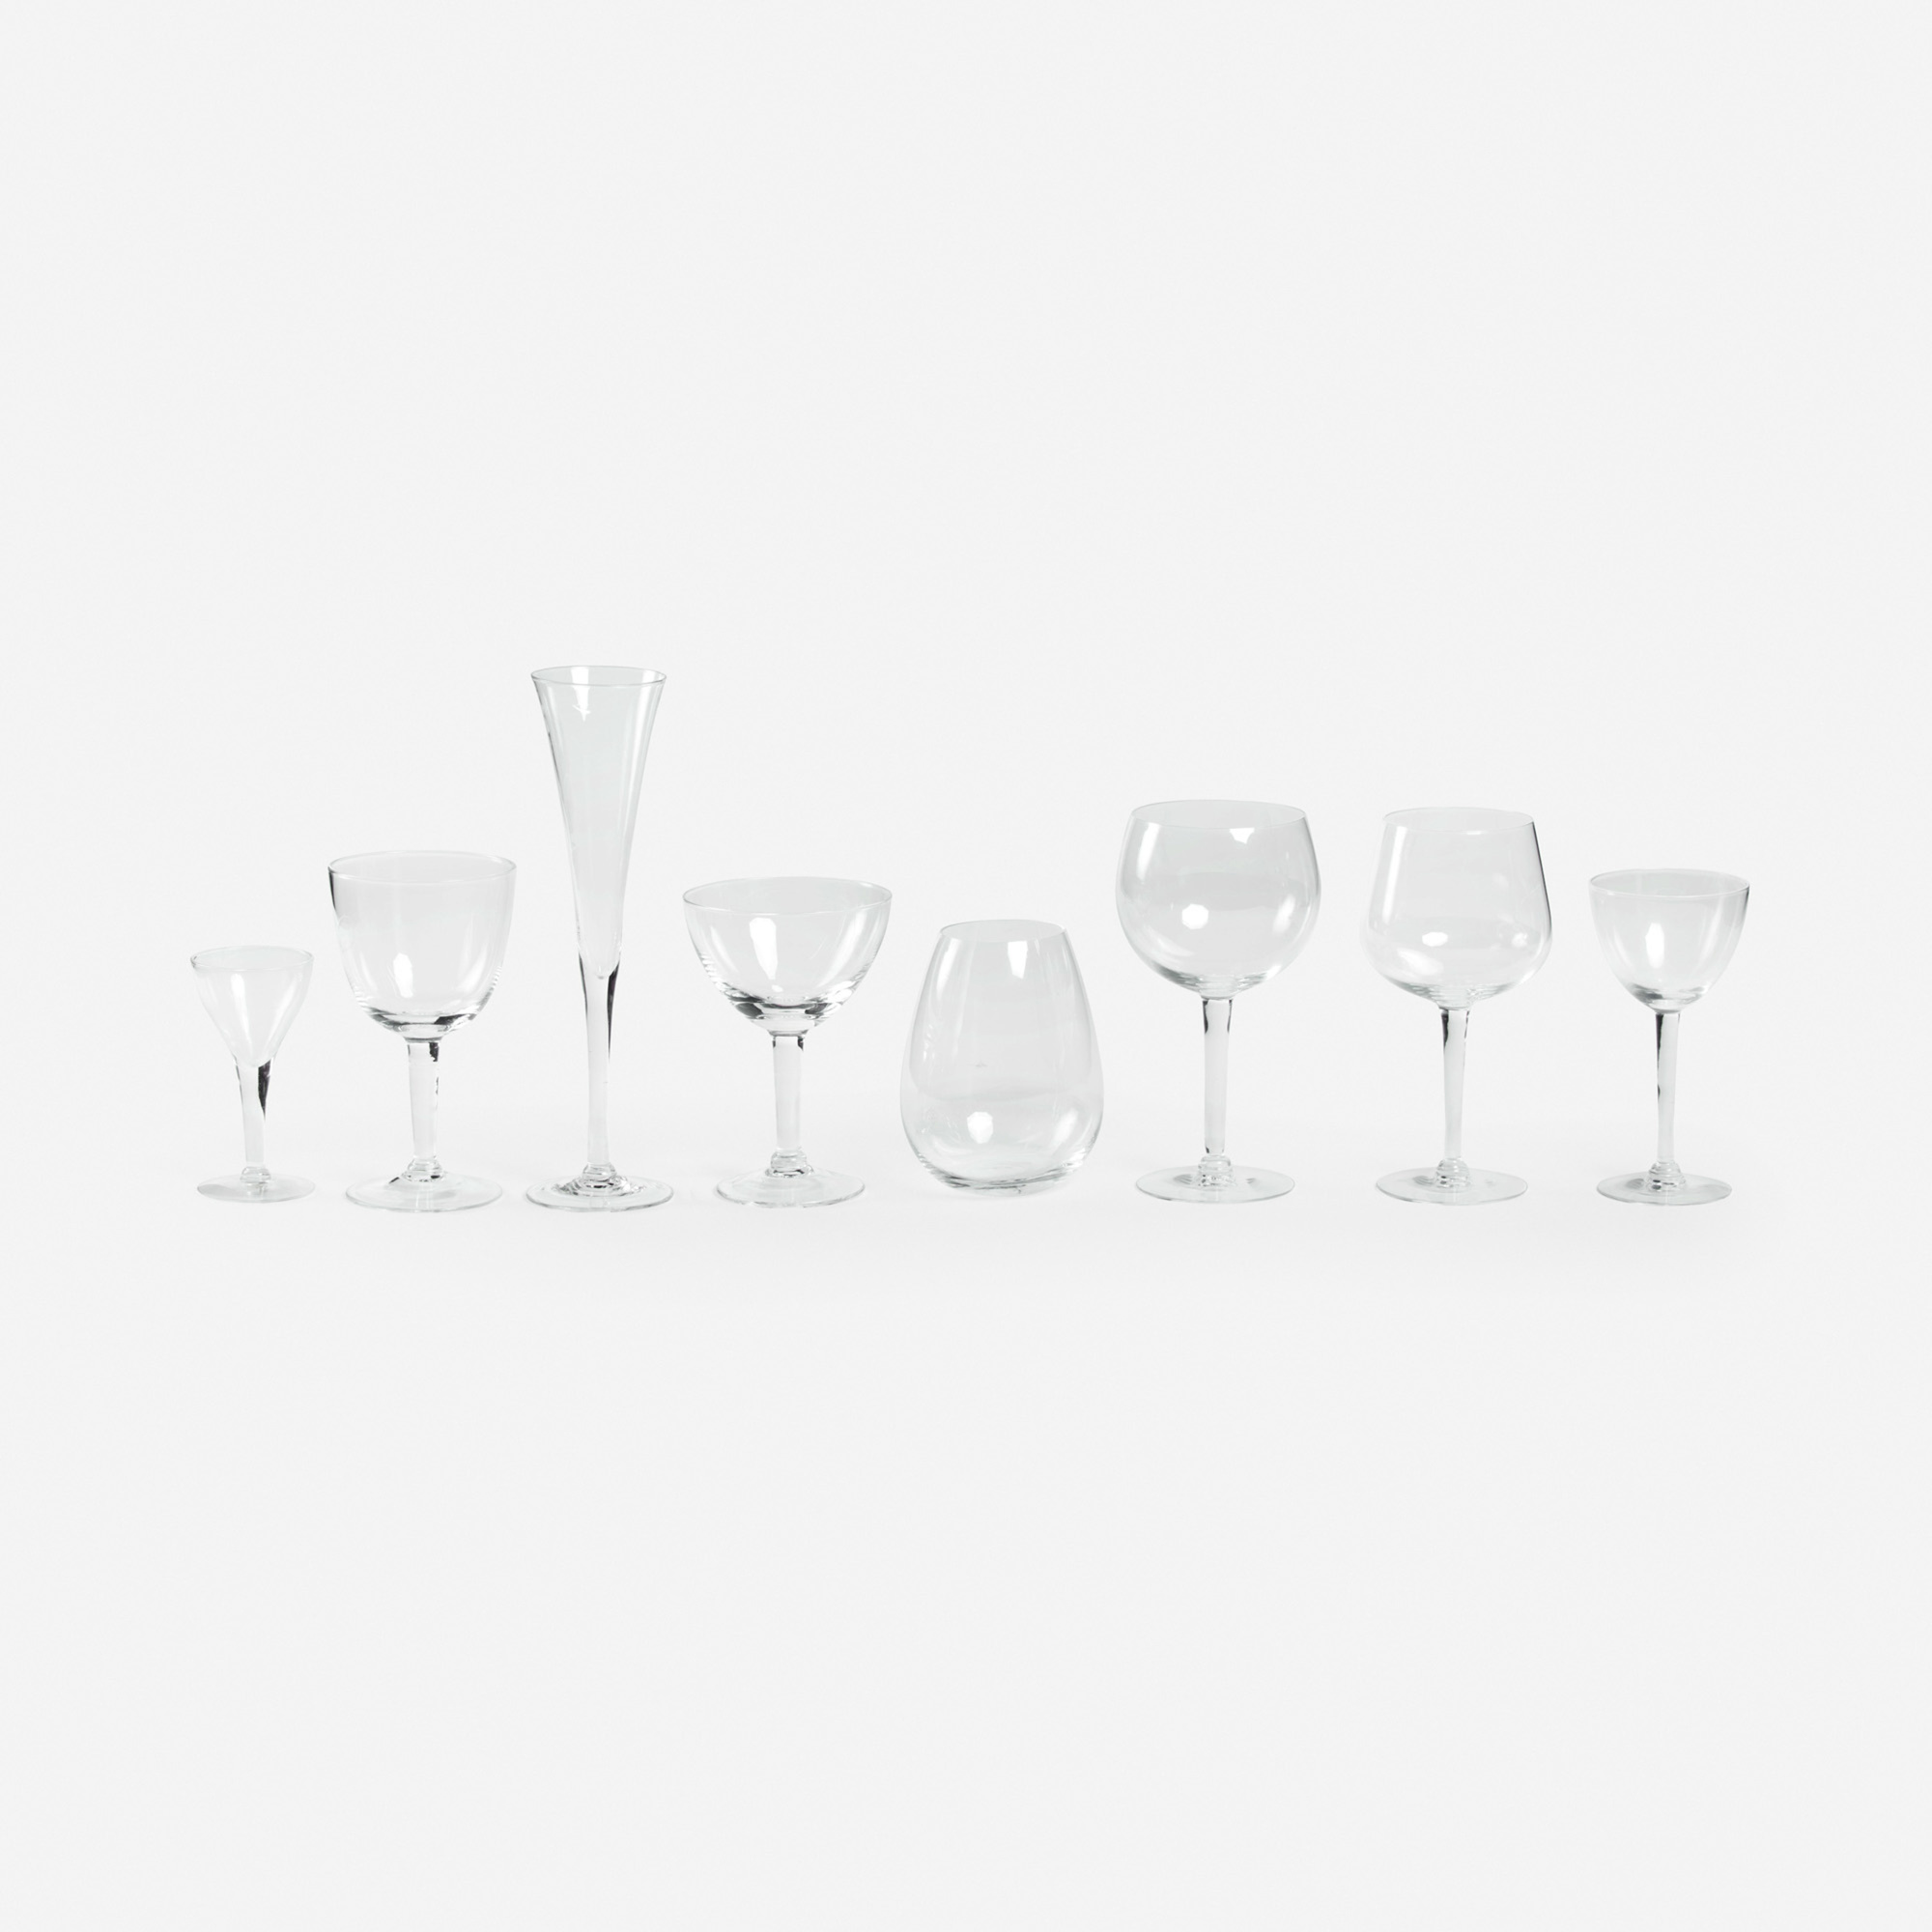 607: Garth and Ada Louise Huxtable / Stemware Collection from The Four Seasons, service for twelve (1 of 1)